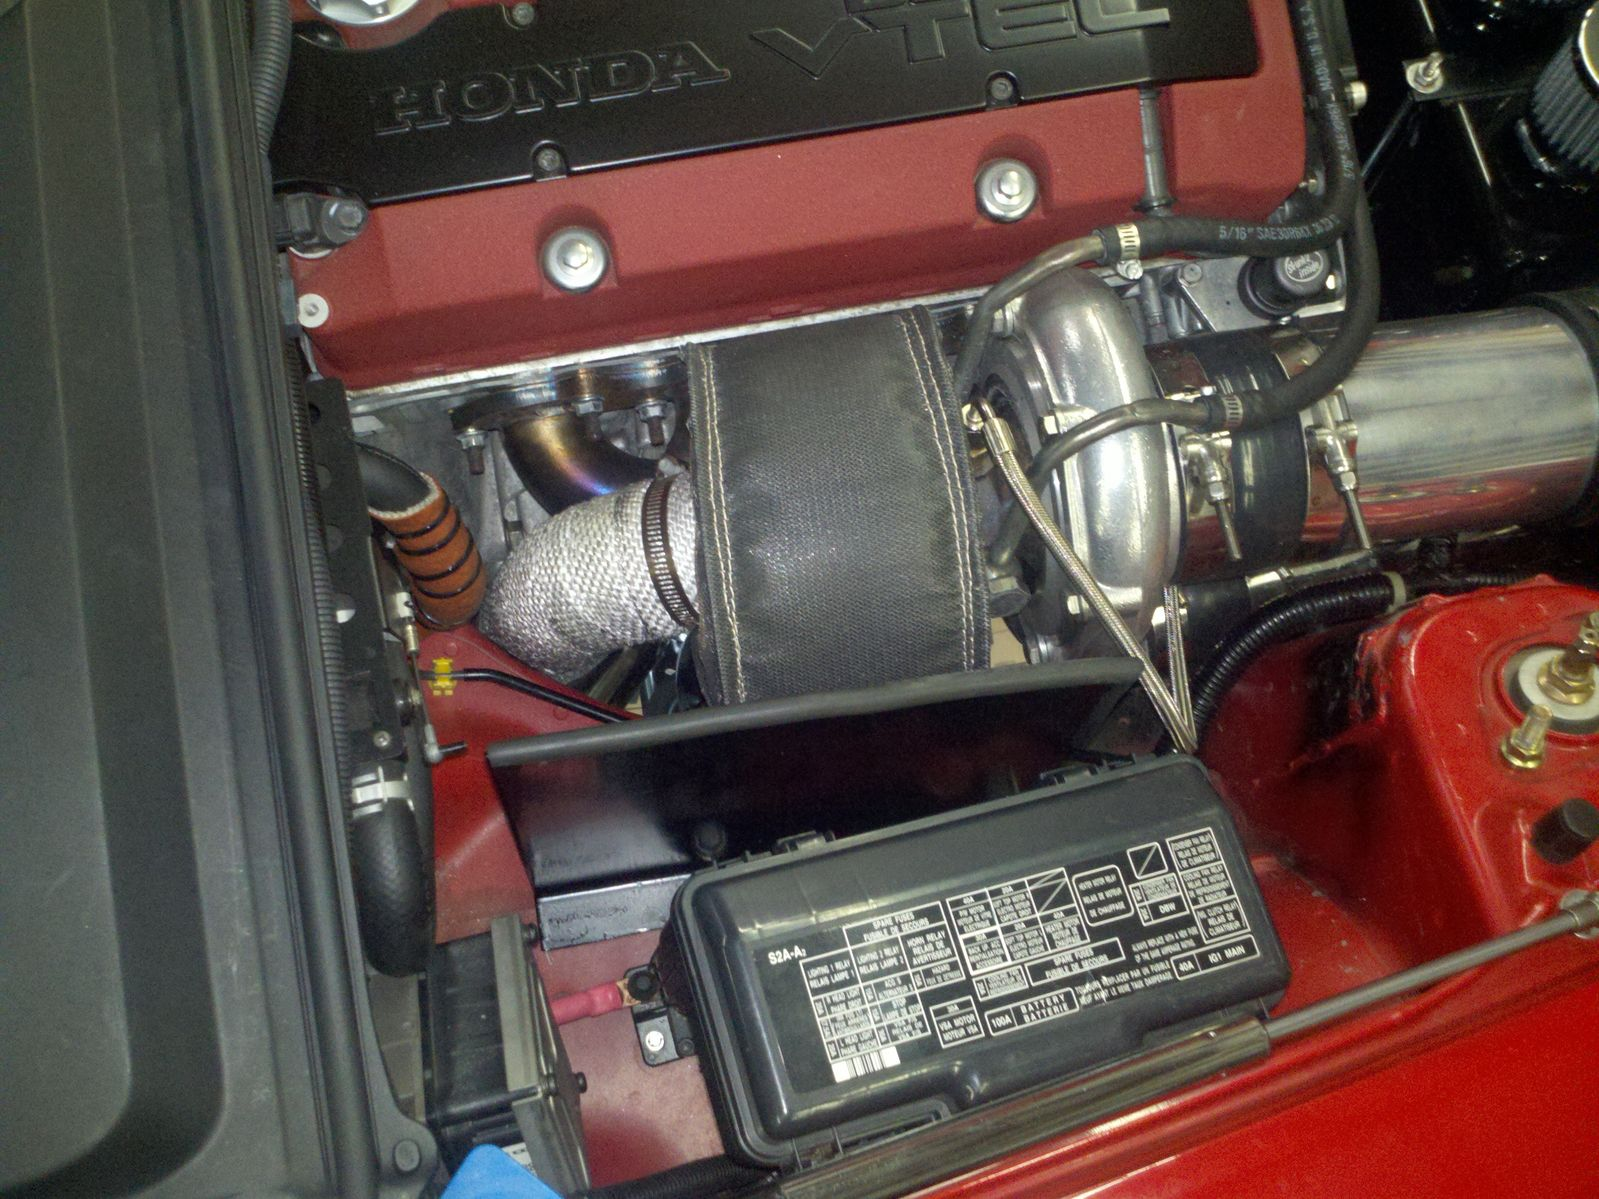 hight resolution of battery relocation help s2ki honda s2000 forums rh s2ki com s2000 fuse box location s2000 under